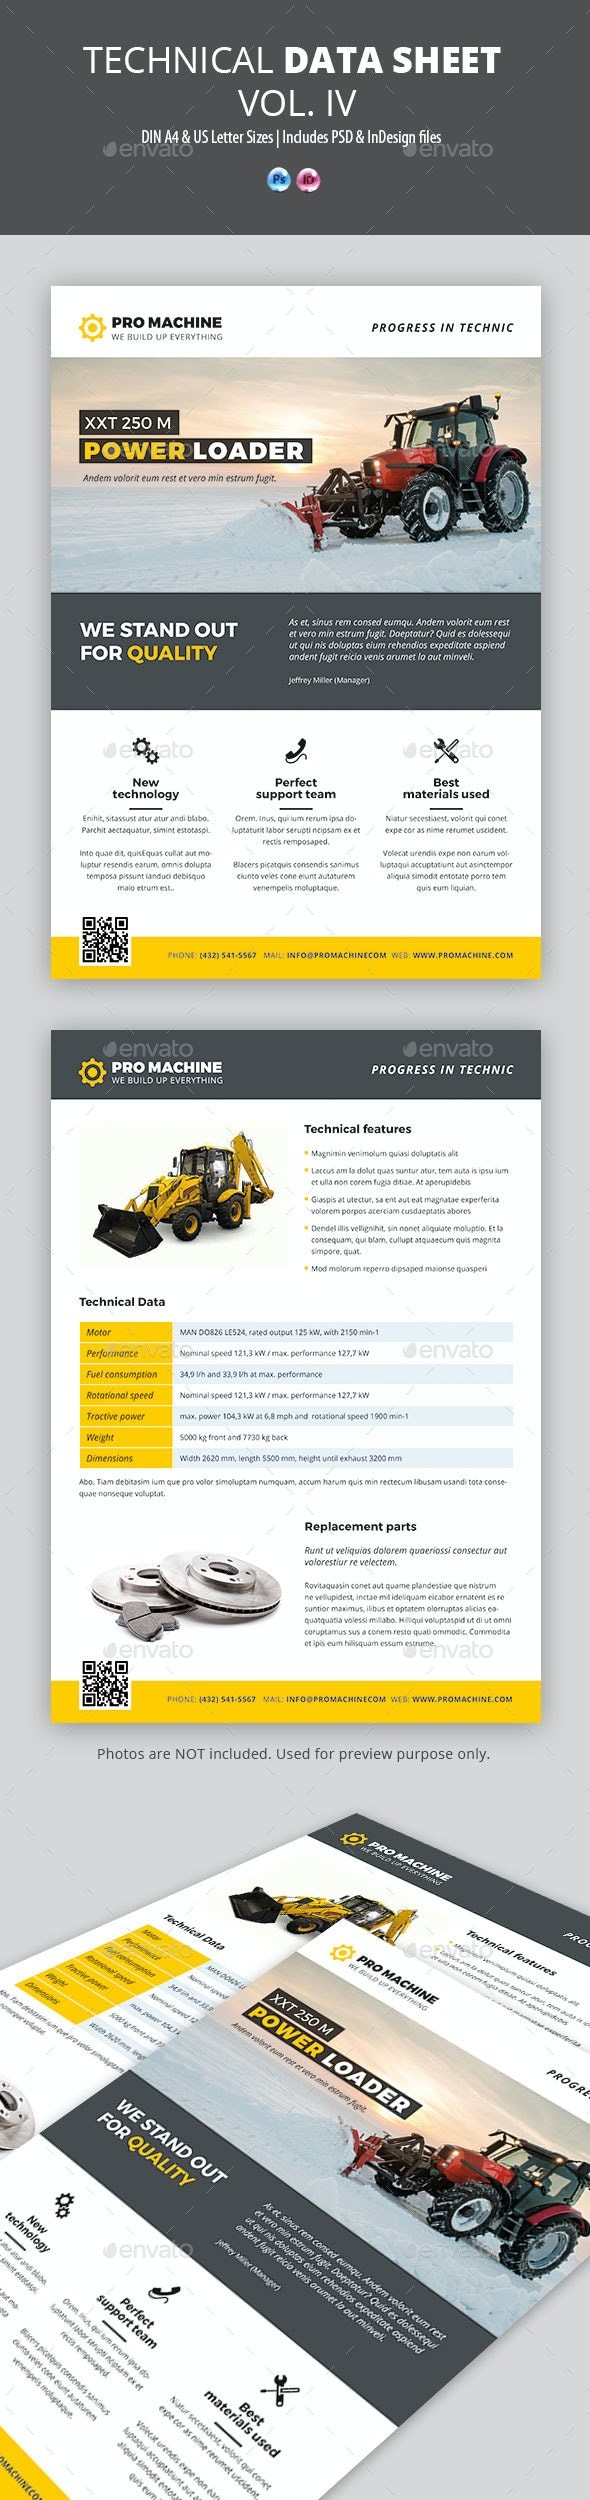 Technical Data or Product Sheet Vol. IV - Corporate Flyers